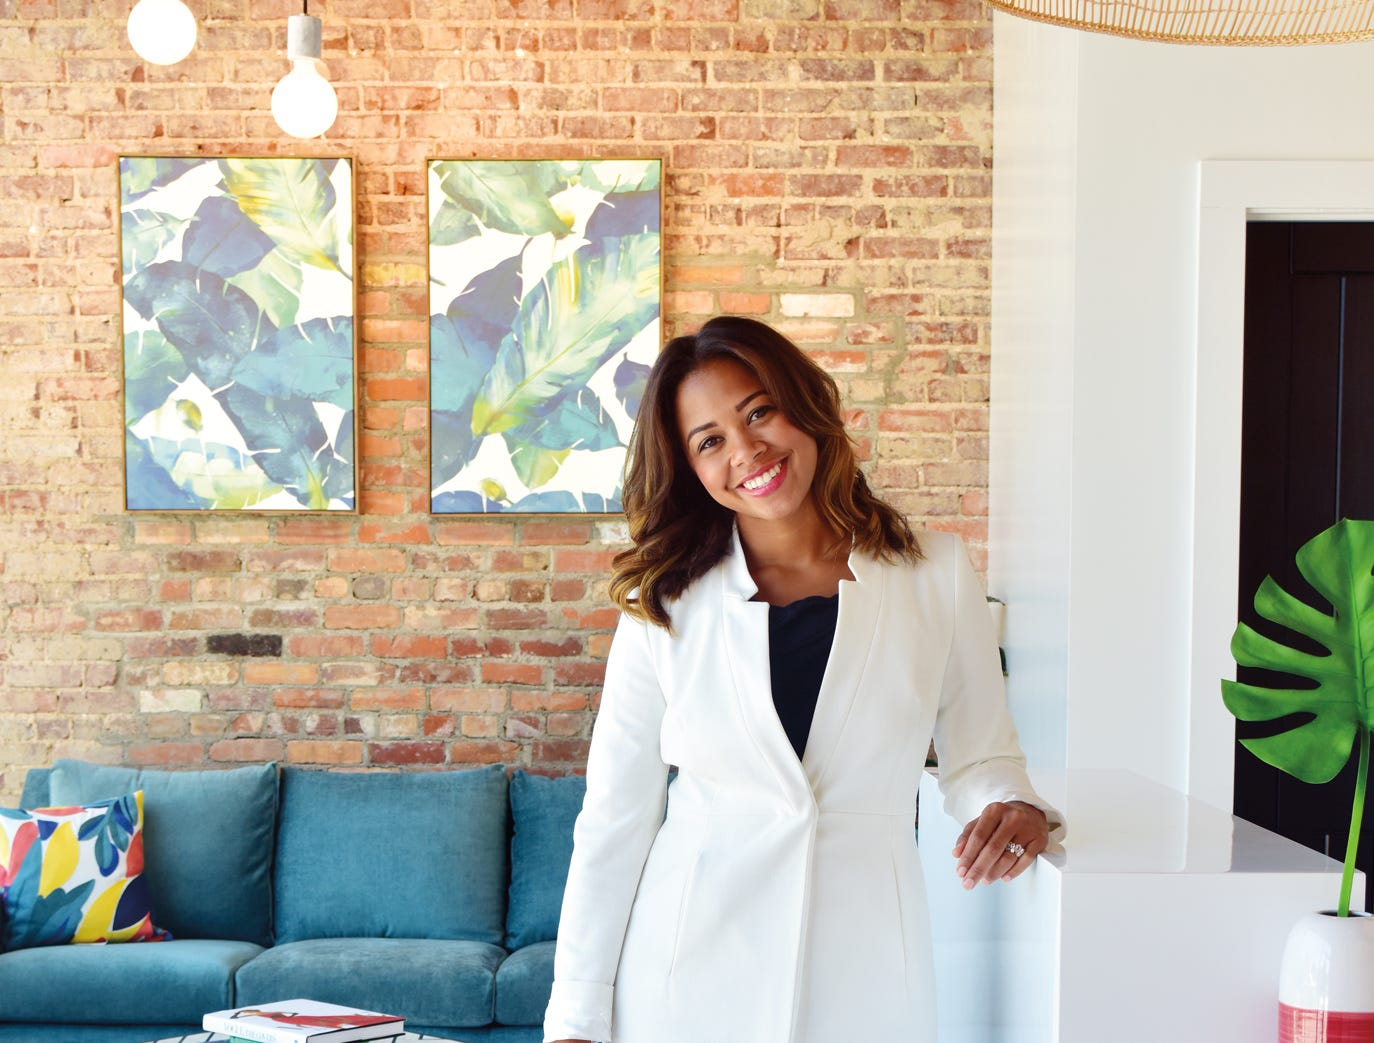 Dentist Natasja Bevins is the owner of Bijou Dental Spa that is open in the West End of downtown Greenville.